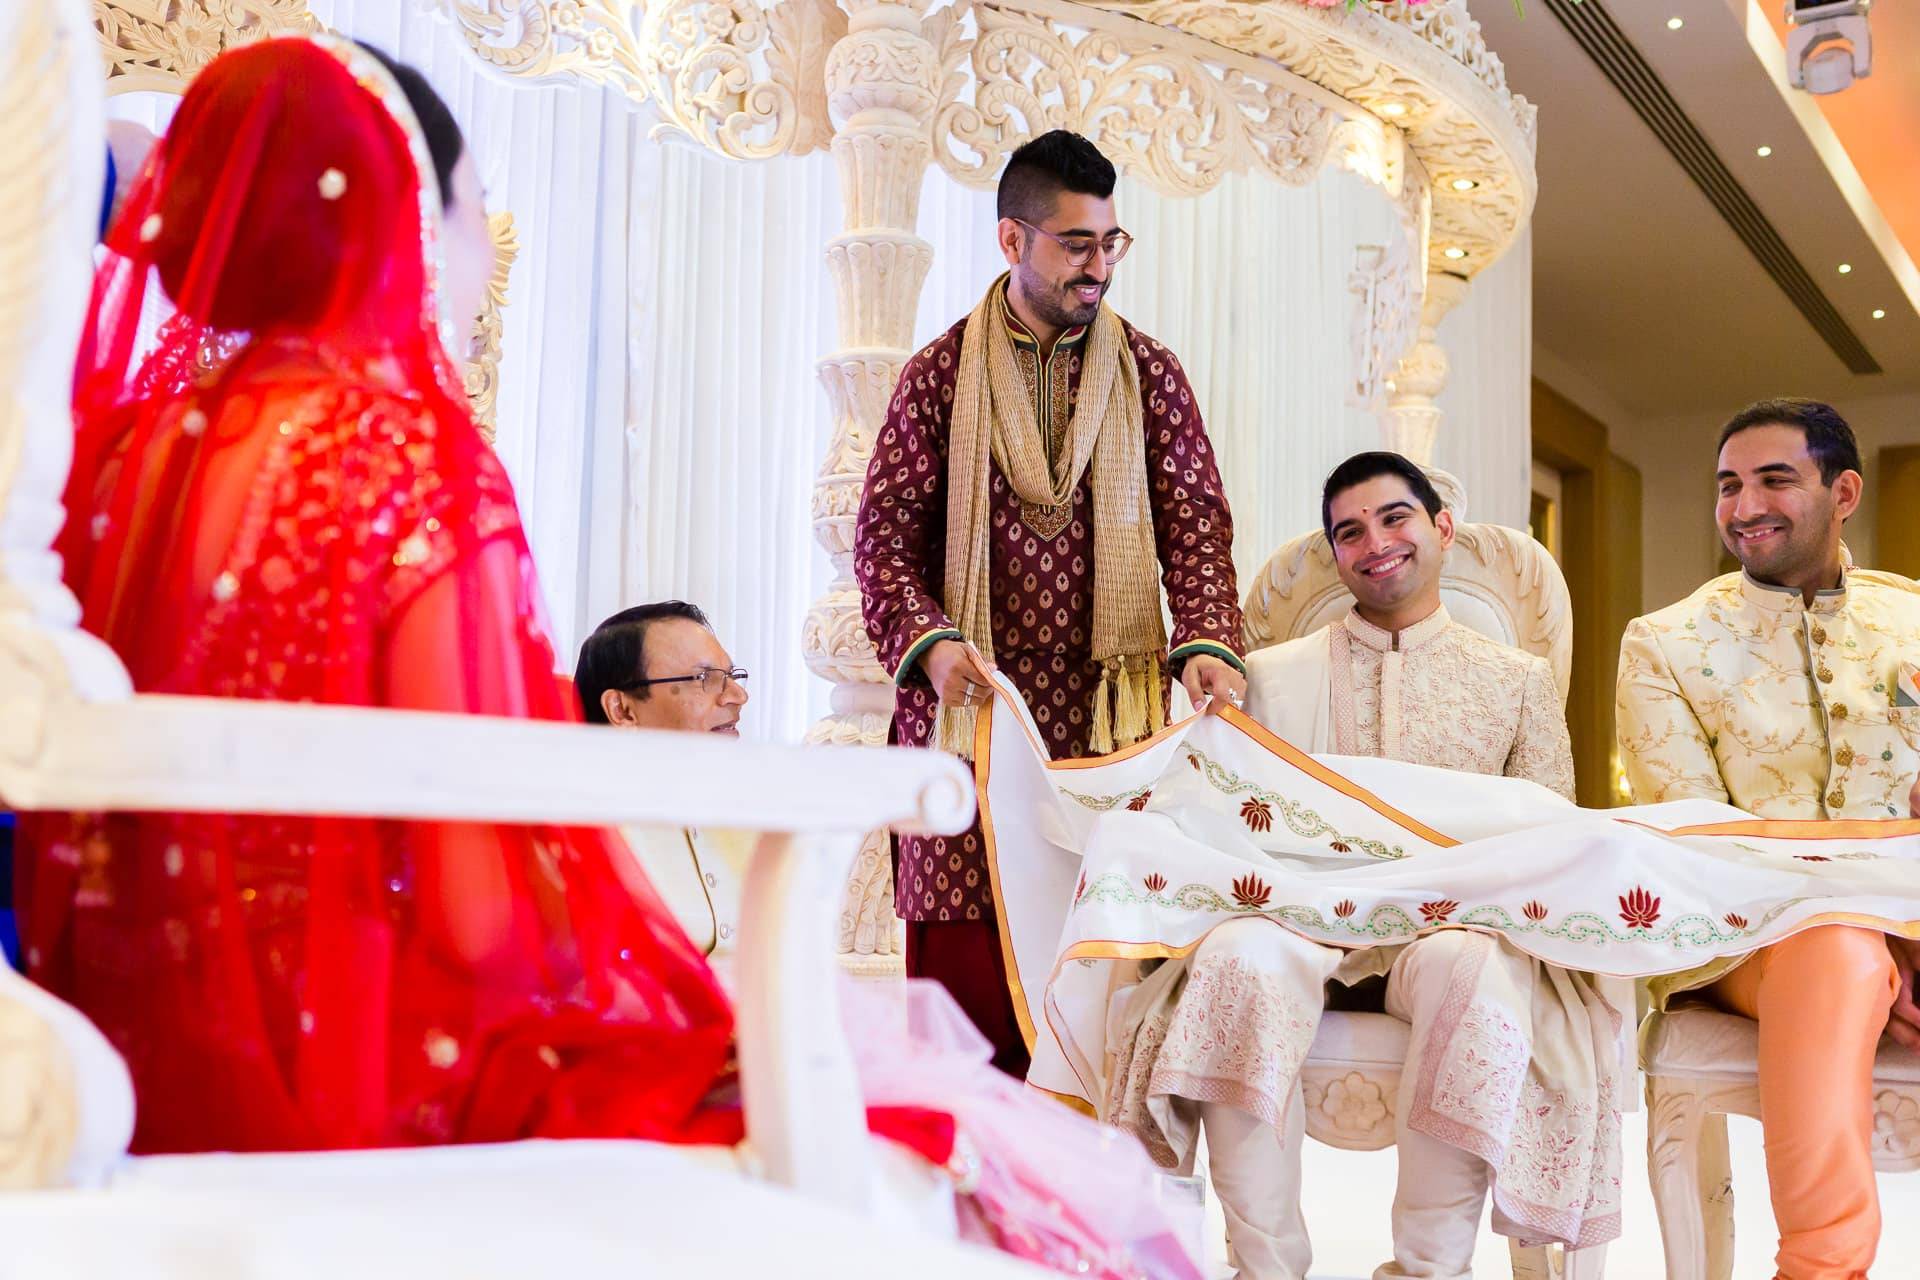 First look during Asian wedding ceremony